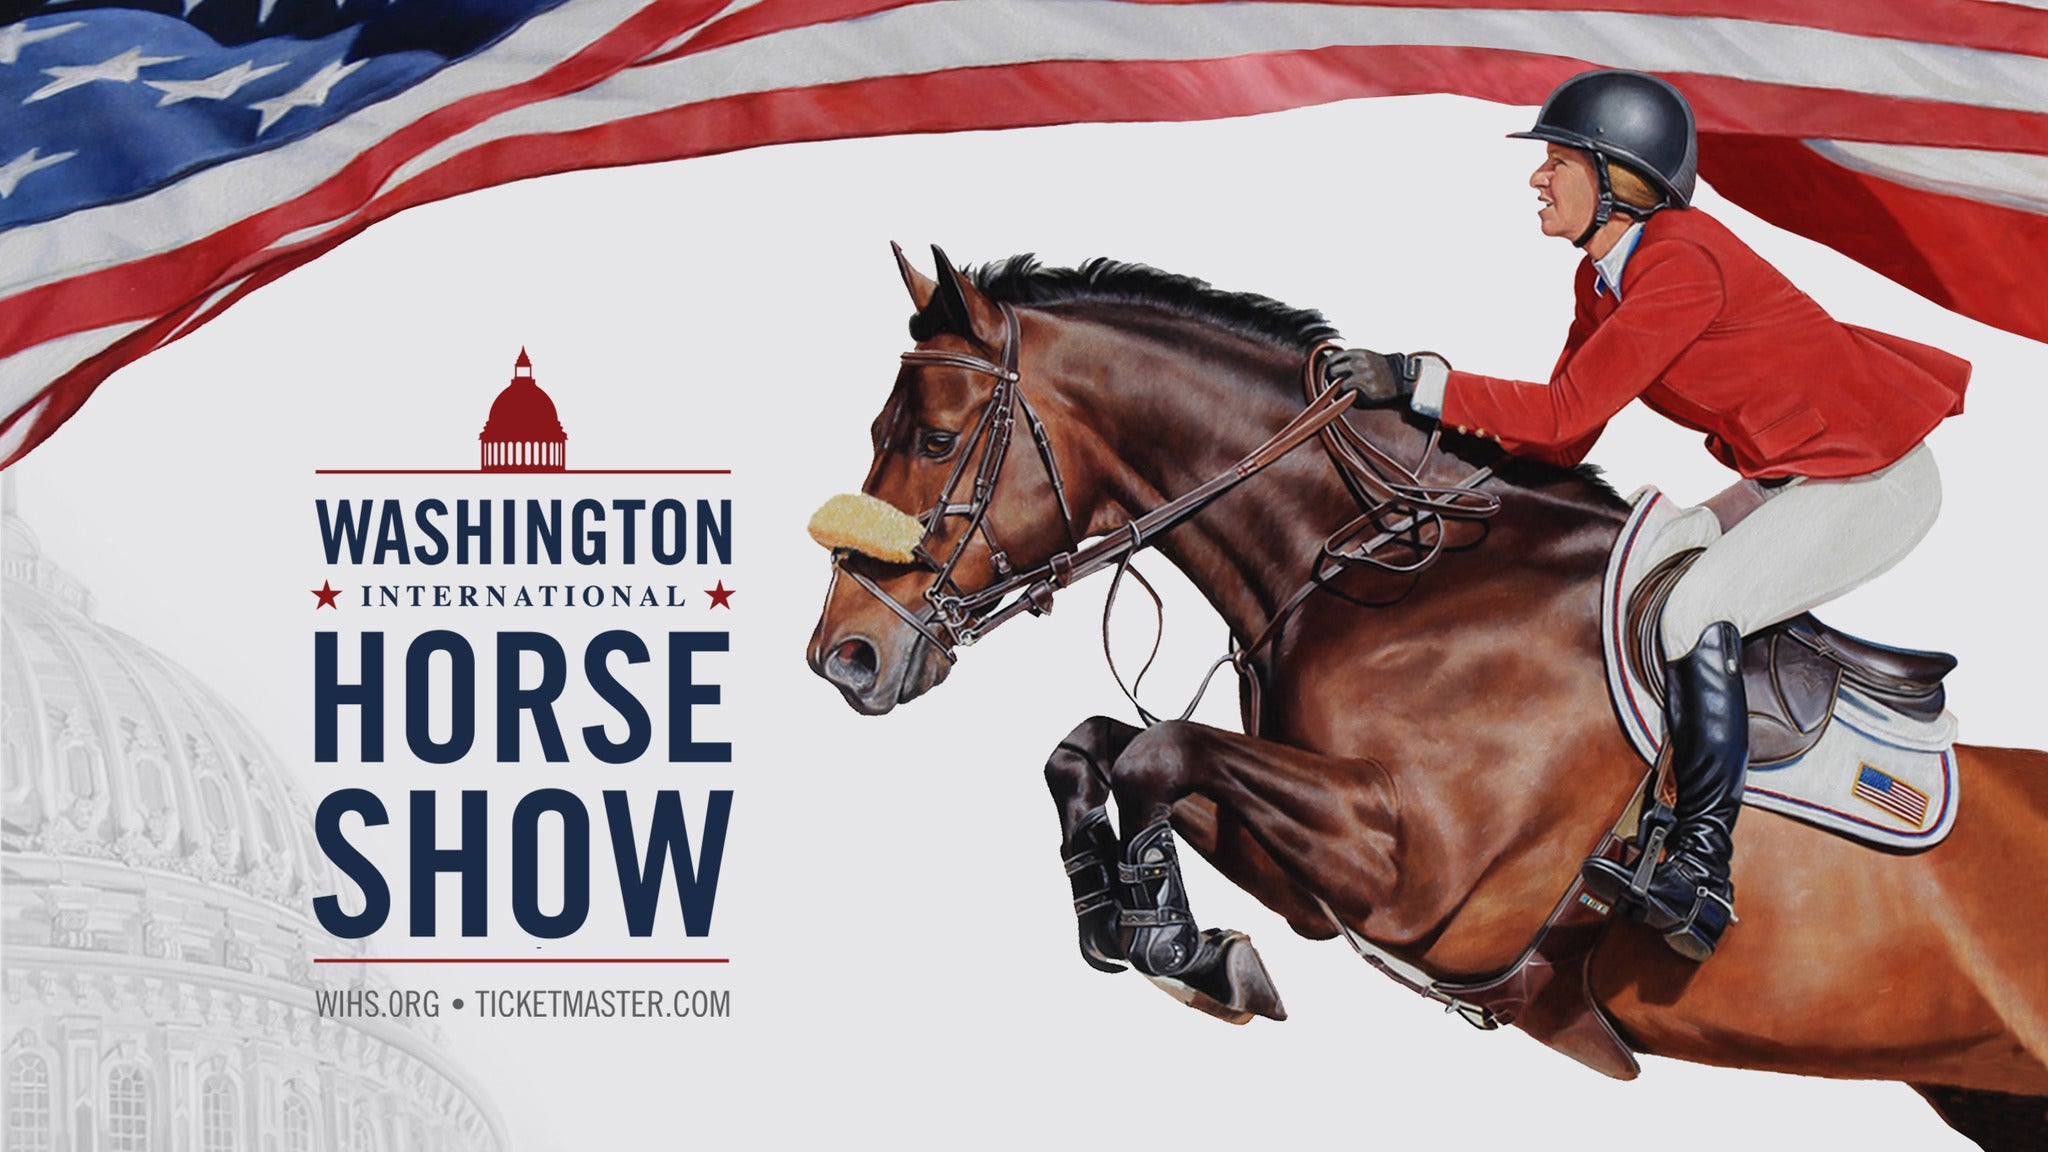 Washington International Horse Show - Anytime Package